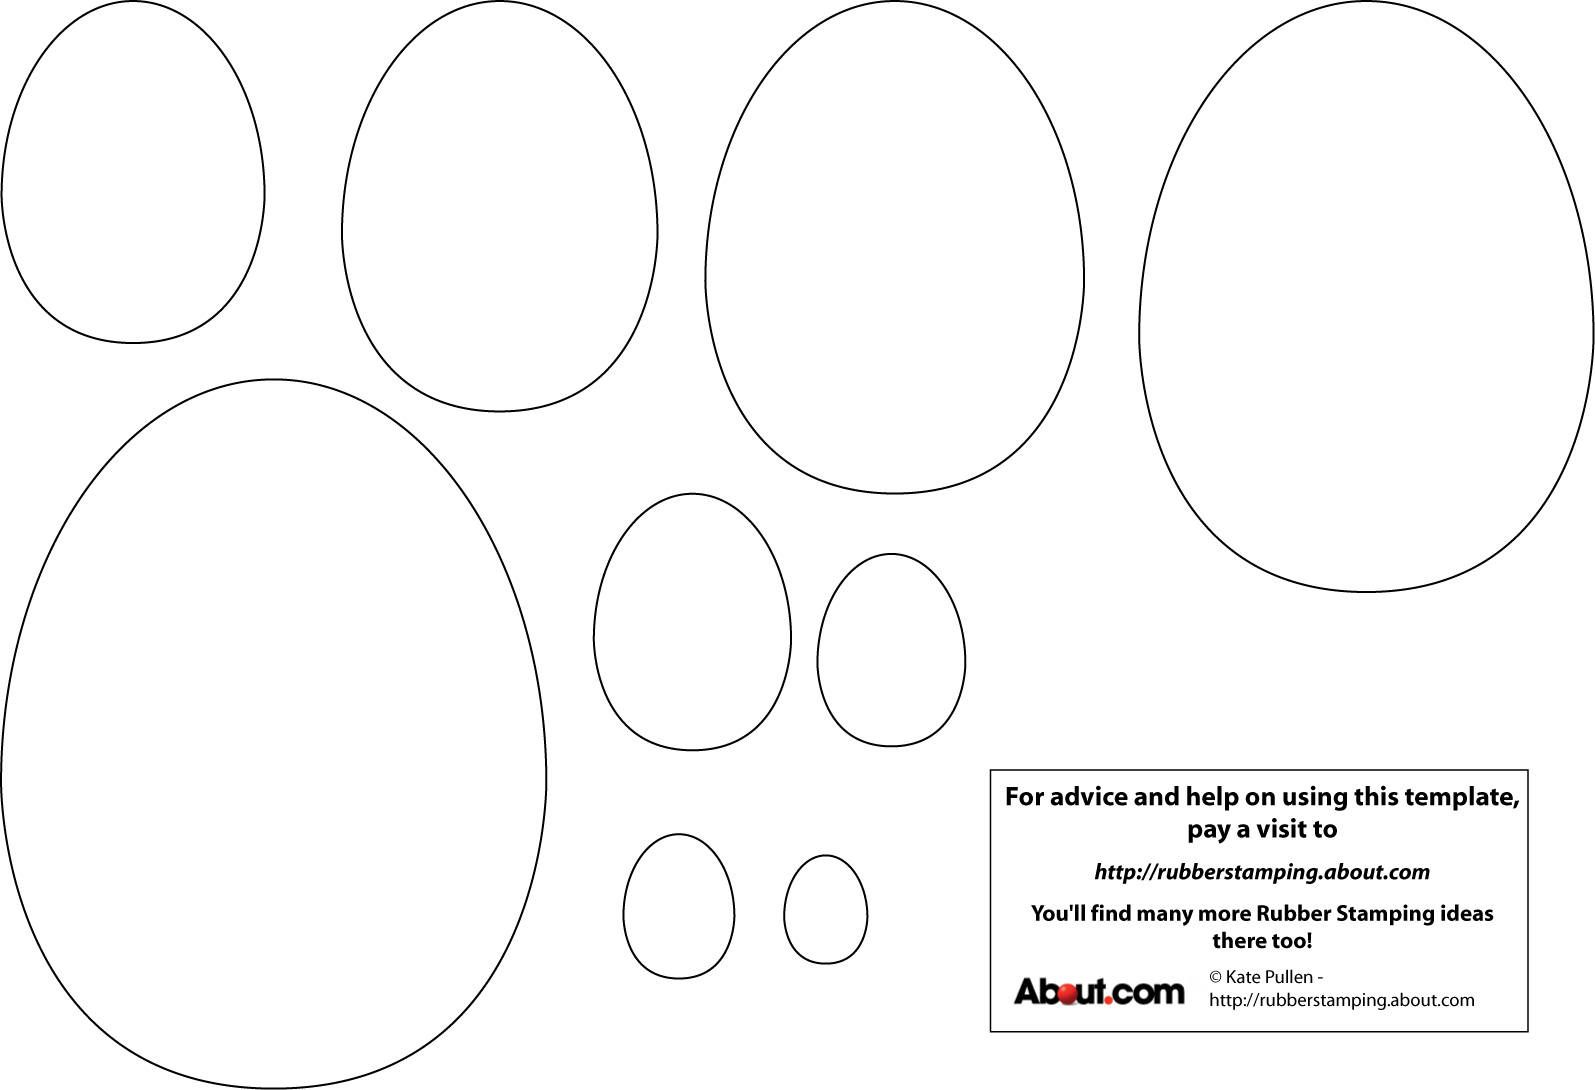 photo regarding Egg Template Printable named Easter Egg Template Printable Preschool-Easter (March or